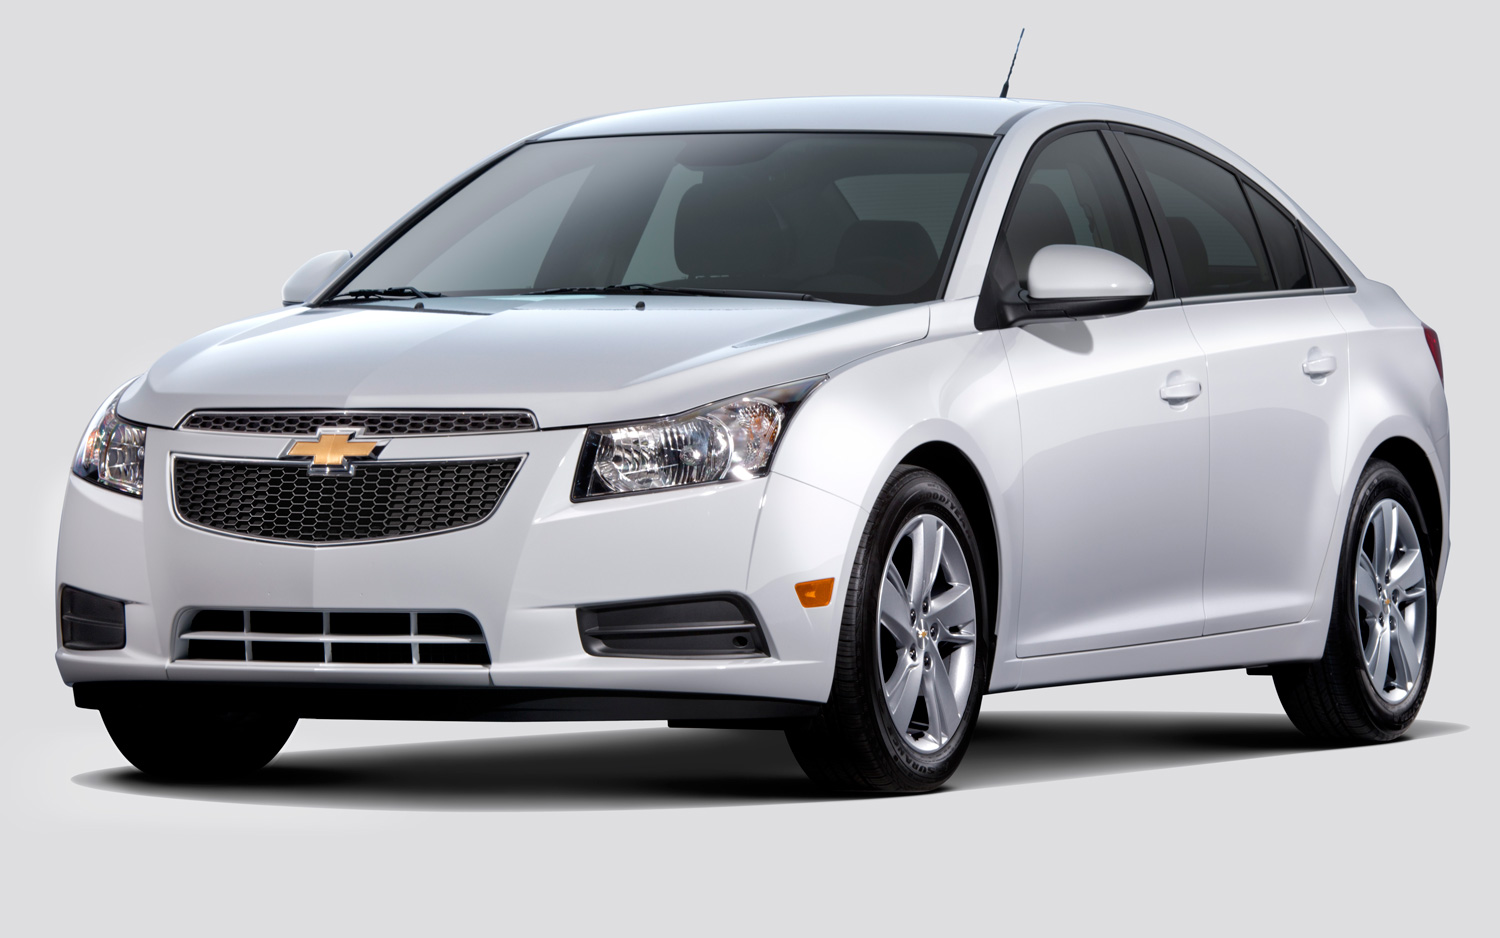 Gm Says Diesel Chevrolet Cruze Gets 46 Mpg